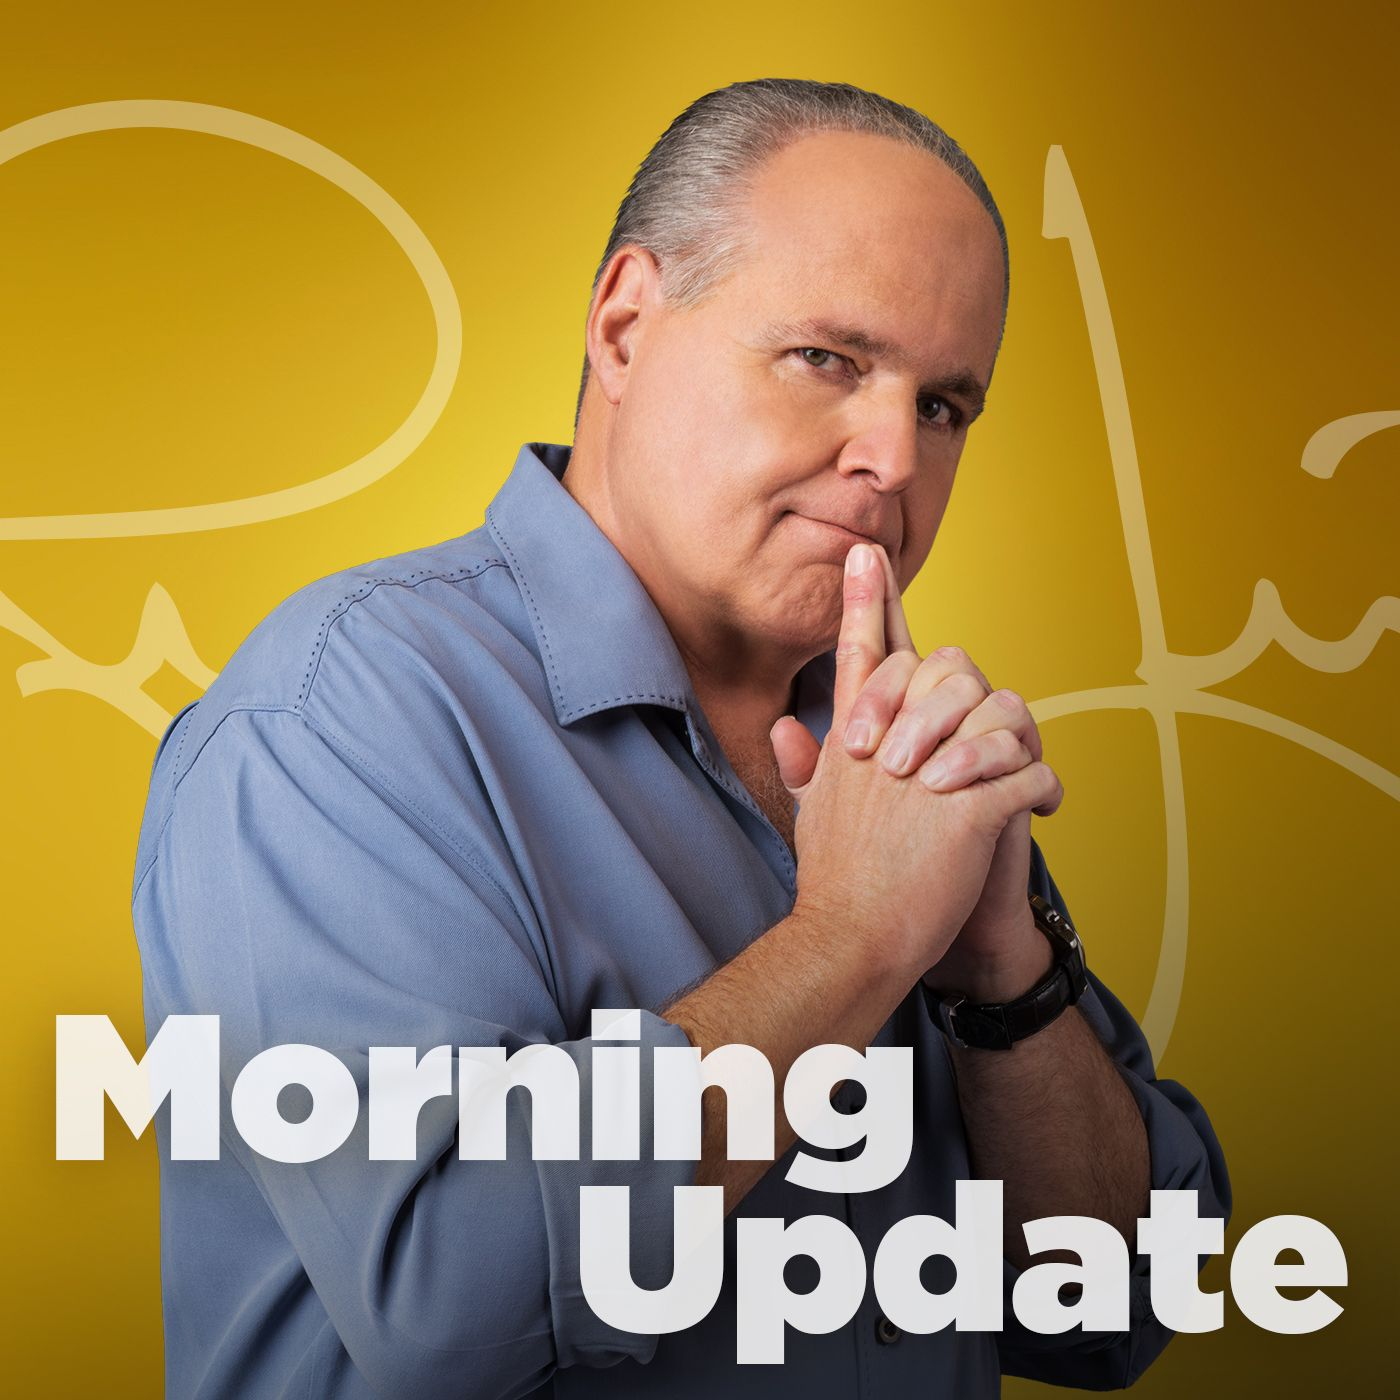 Rush Limbaugh Jun 10, 2020